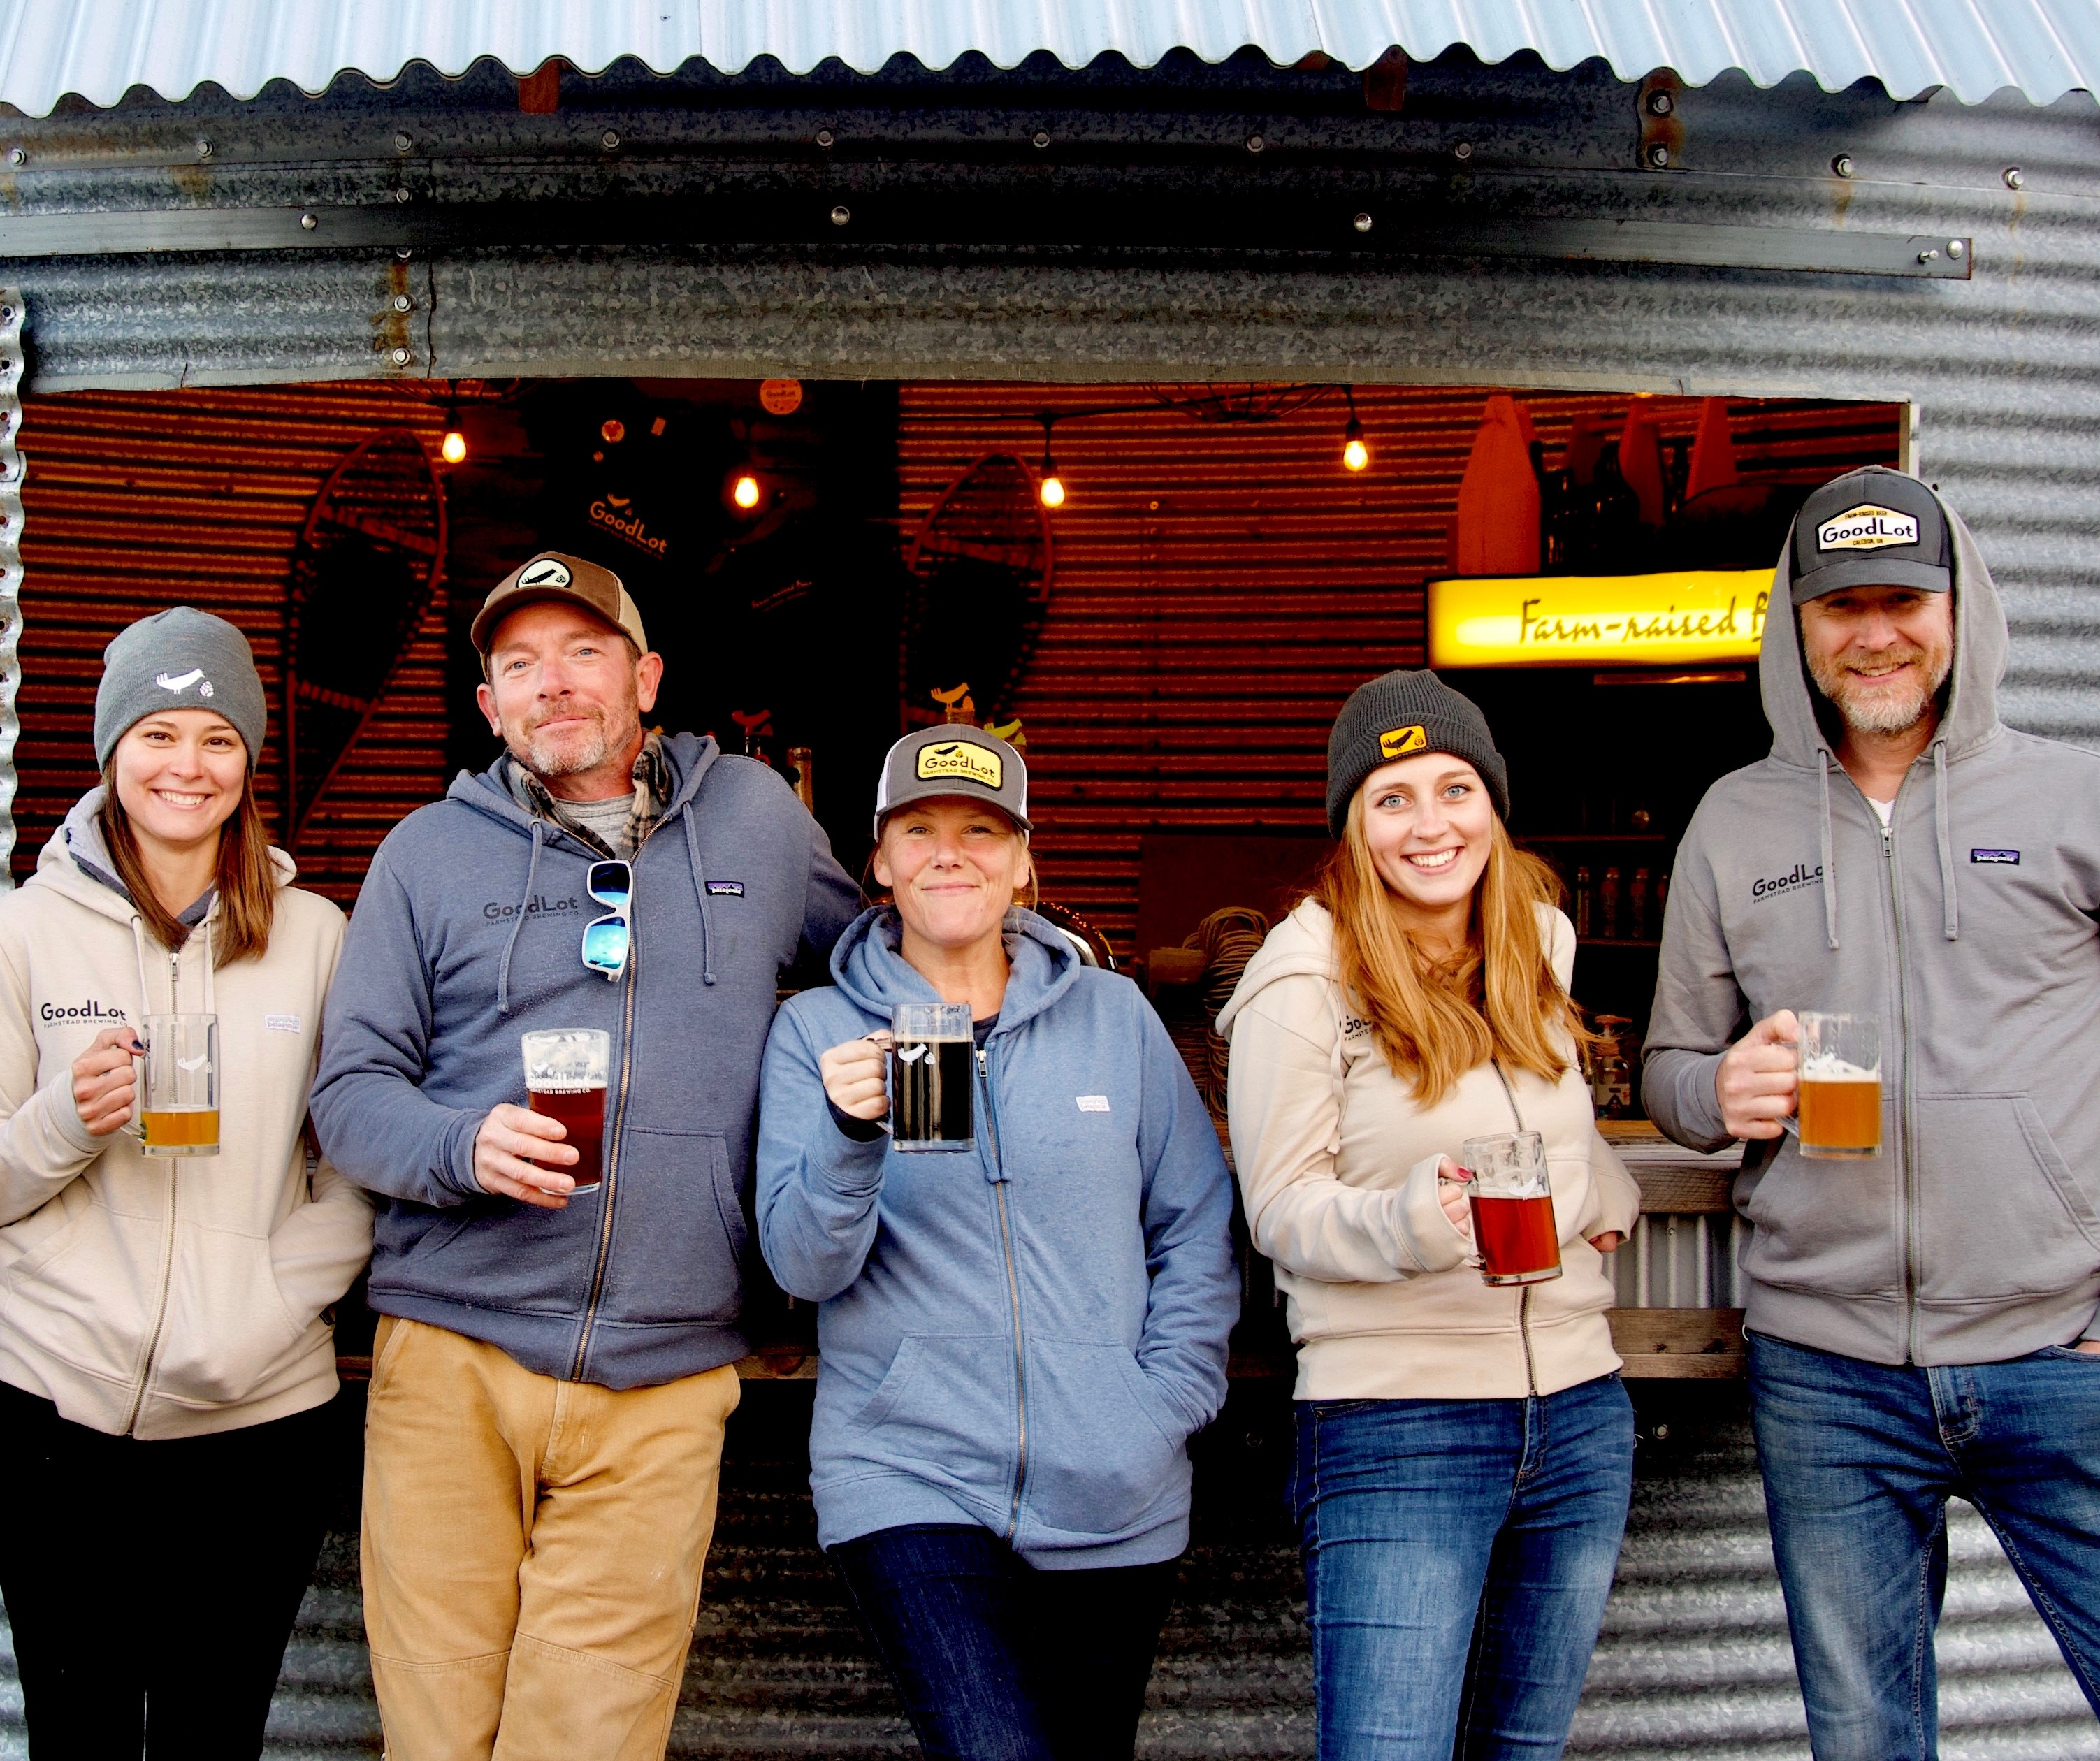 Goodlot Farmstead Brewing team